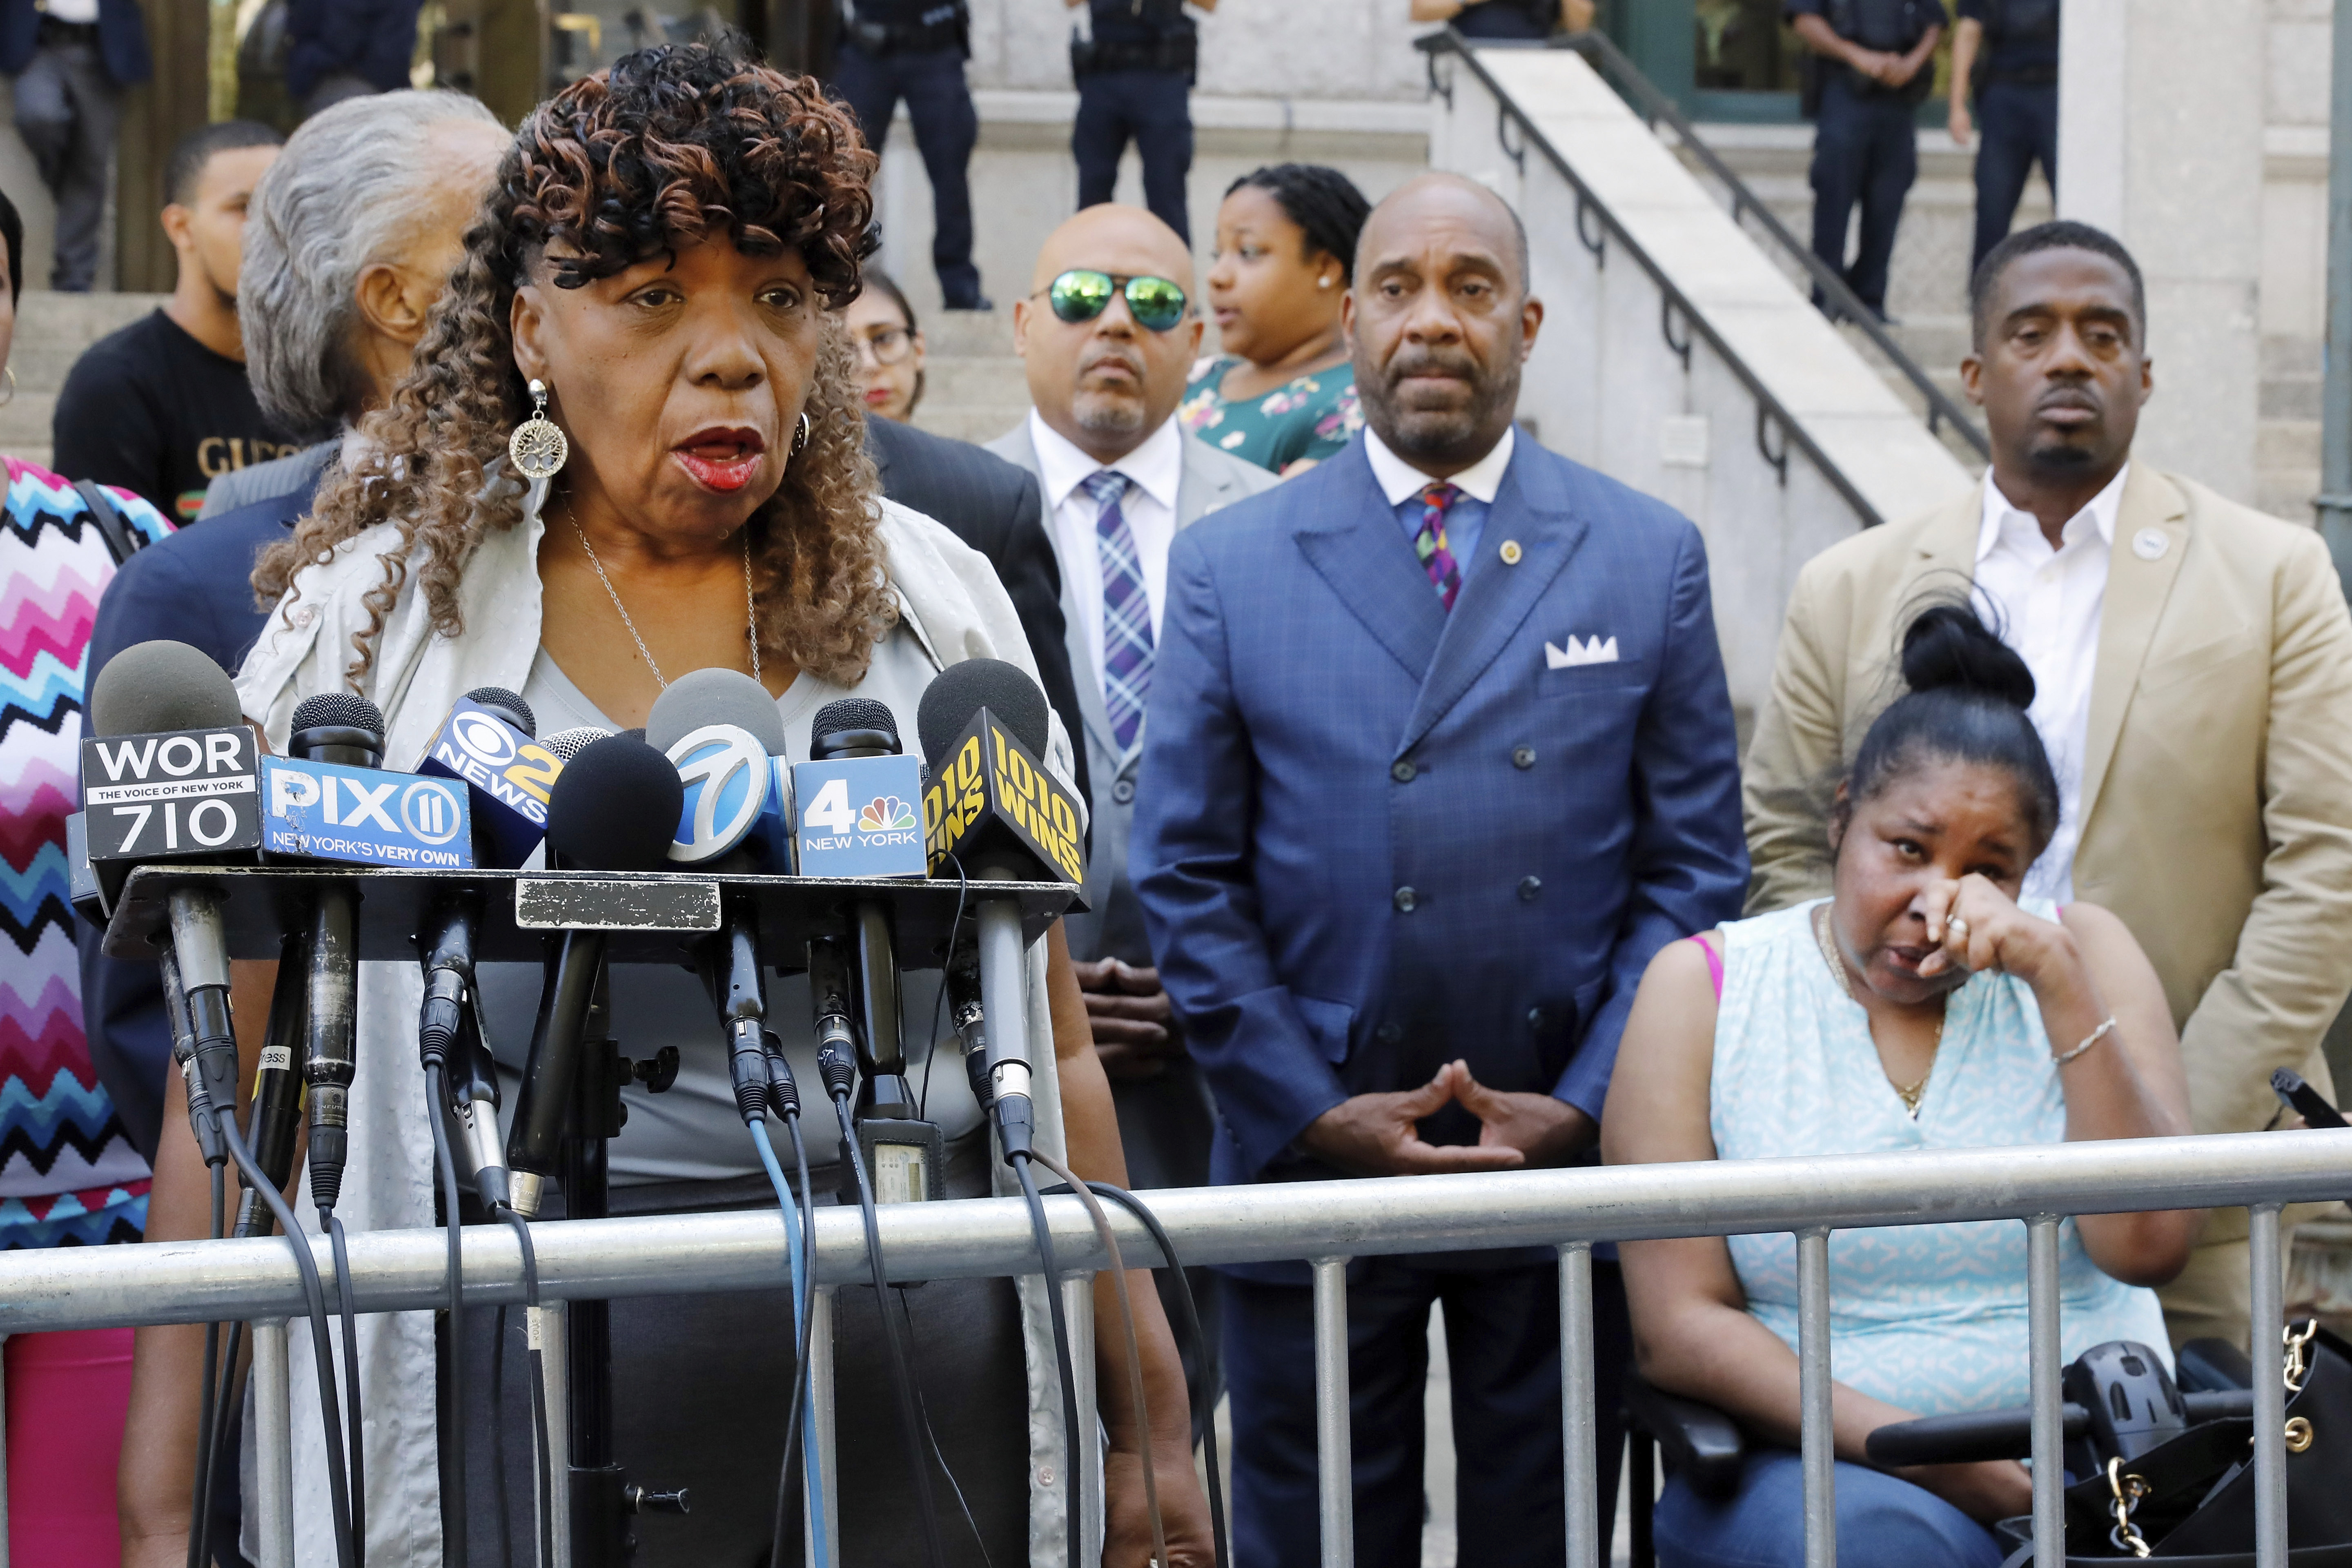 """They have let us down"": Eric Garner's family criticizes decision to not federally charge NYPD officer"